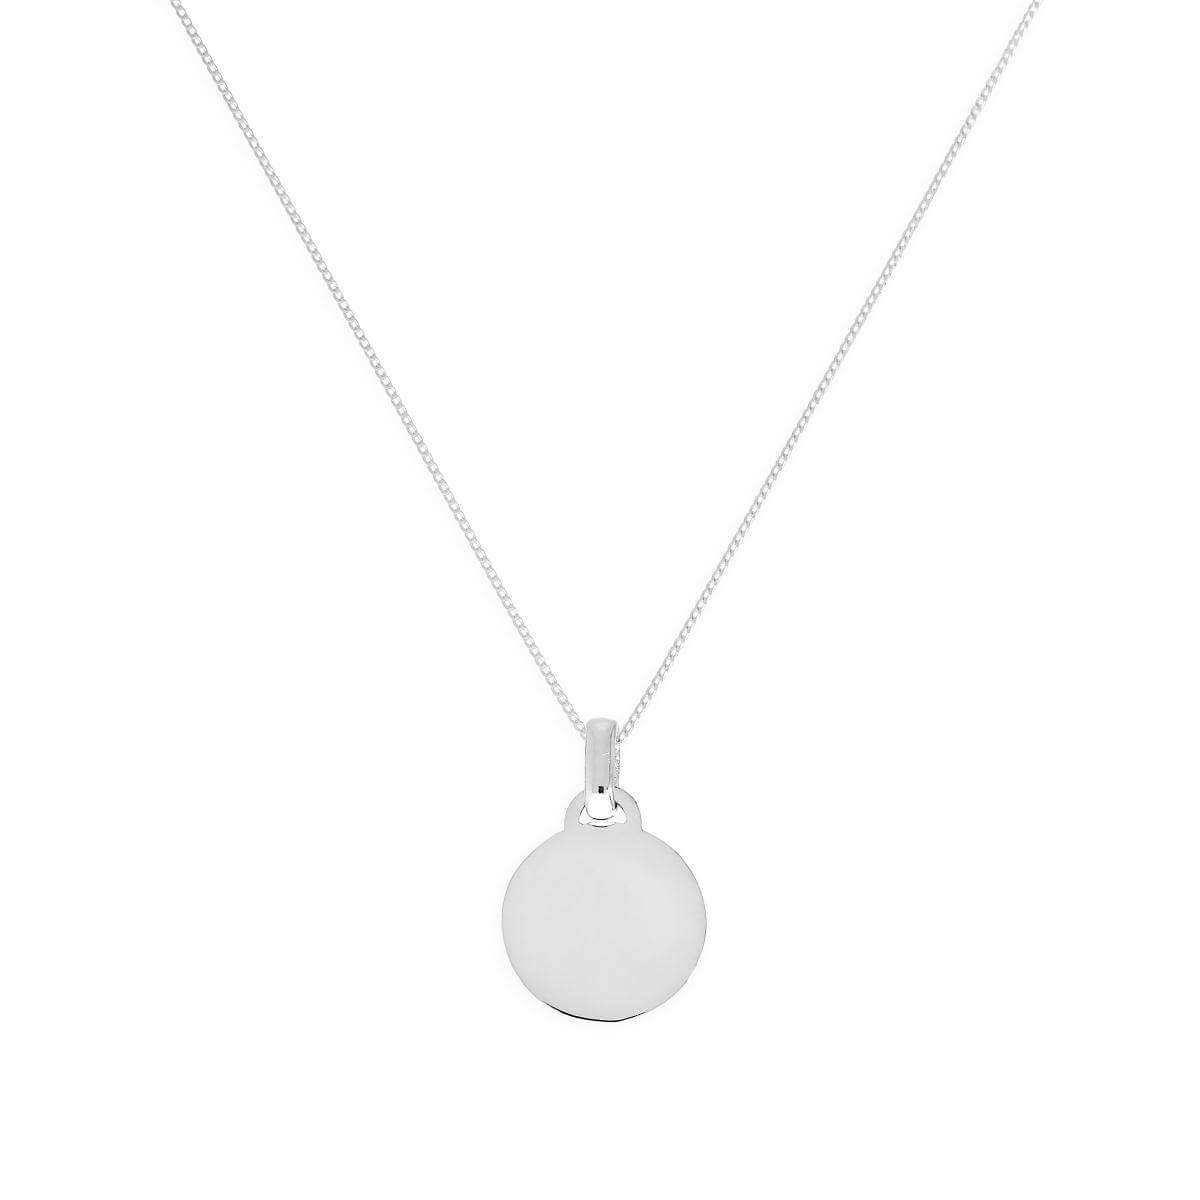 9ct White Gold Small Engravable Circle Pendant Necklace 16 - 20 Inches